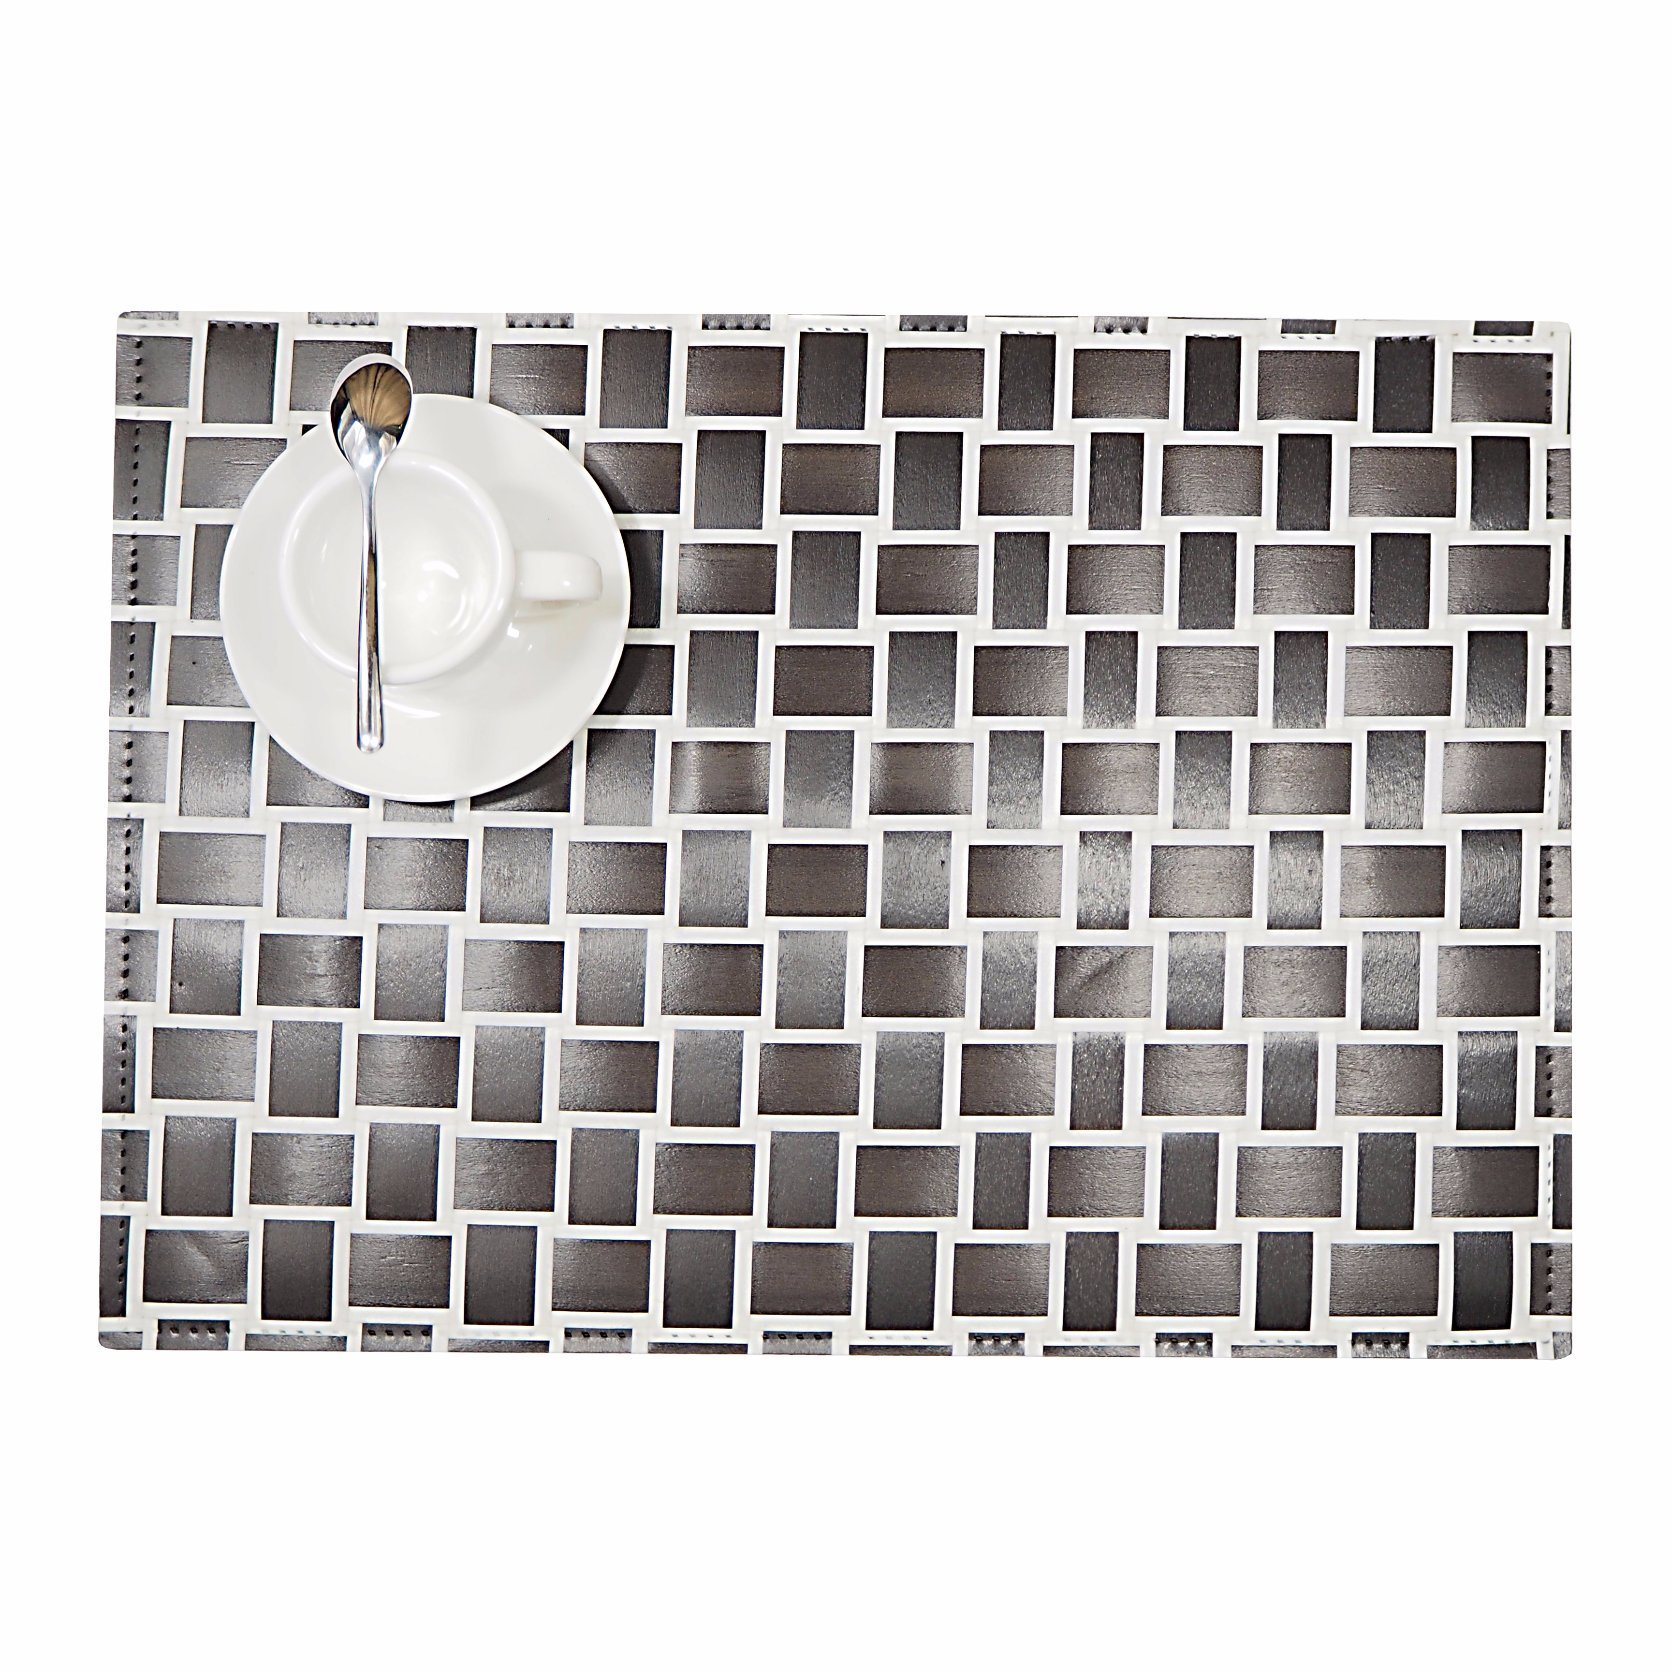 Mixed Color 100% Polyester Woven Placemat for Tabletop